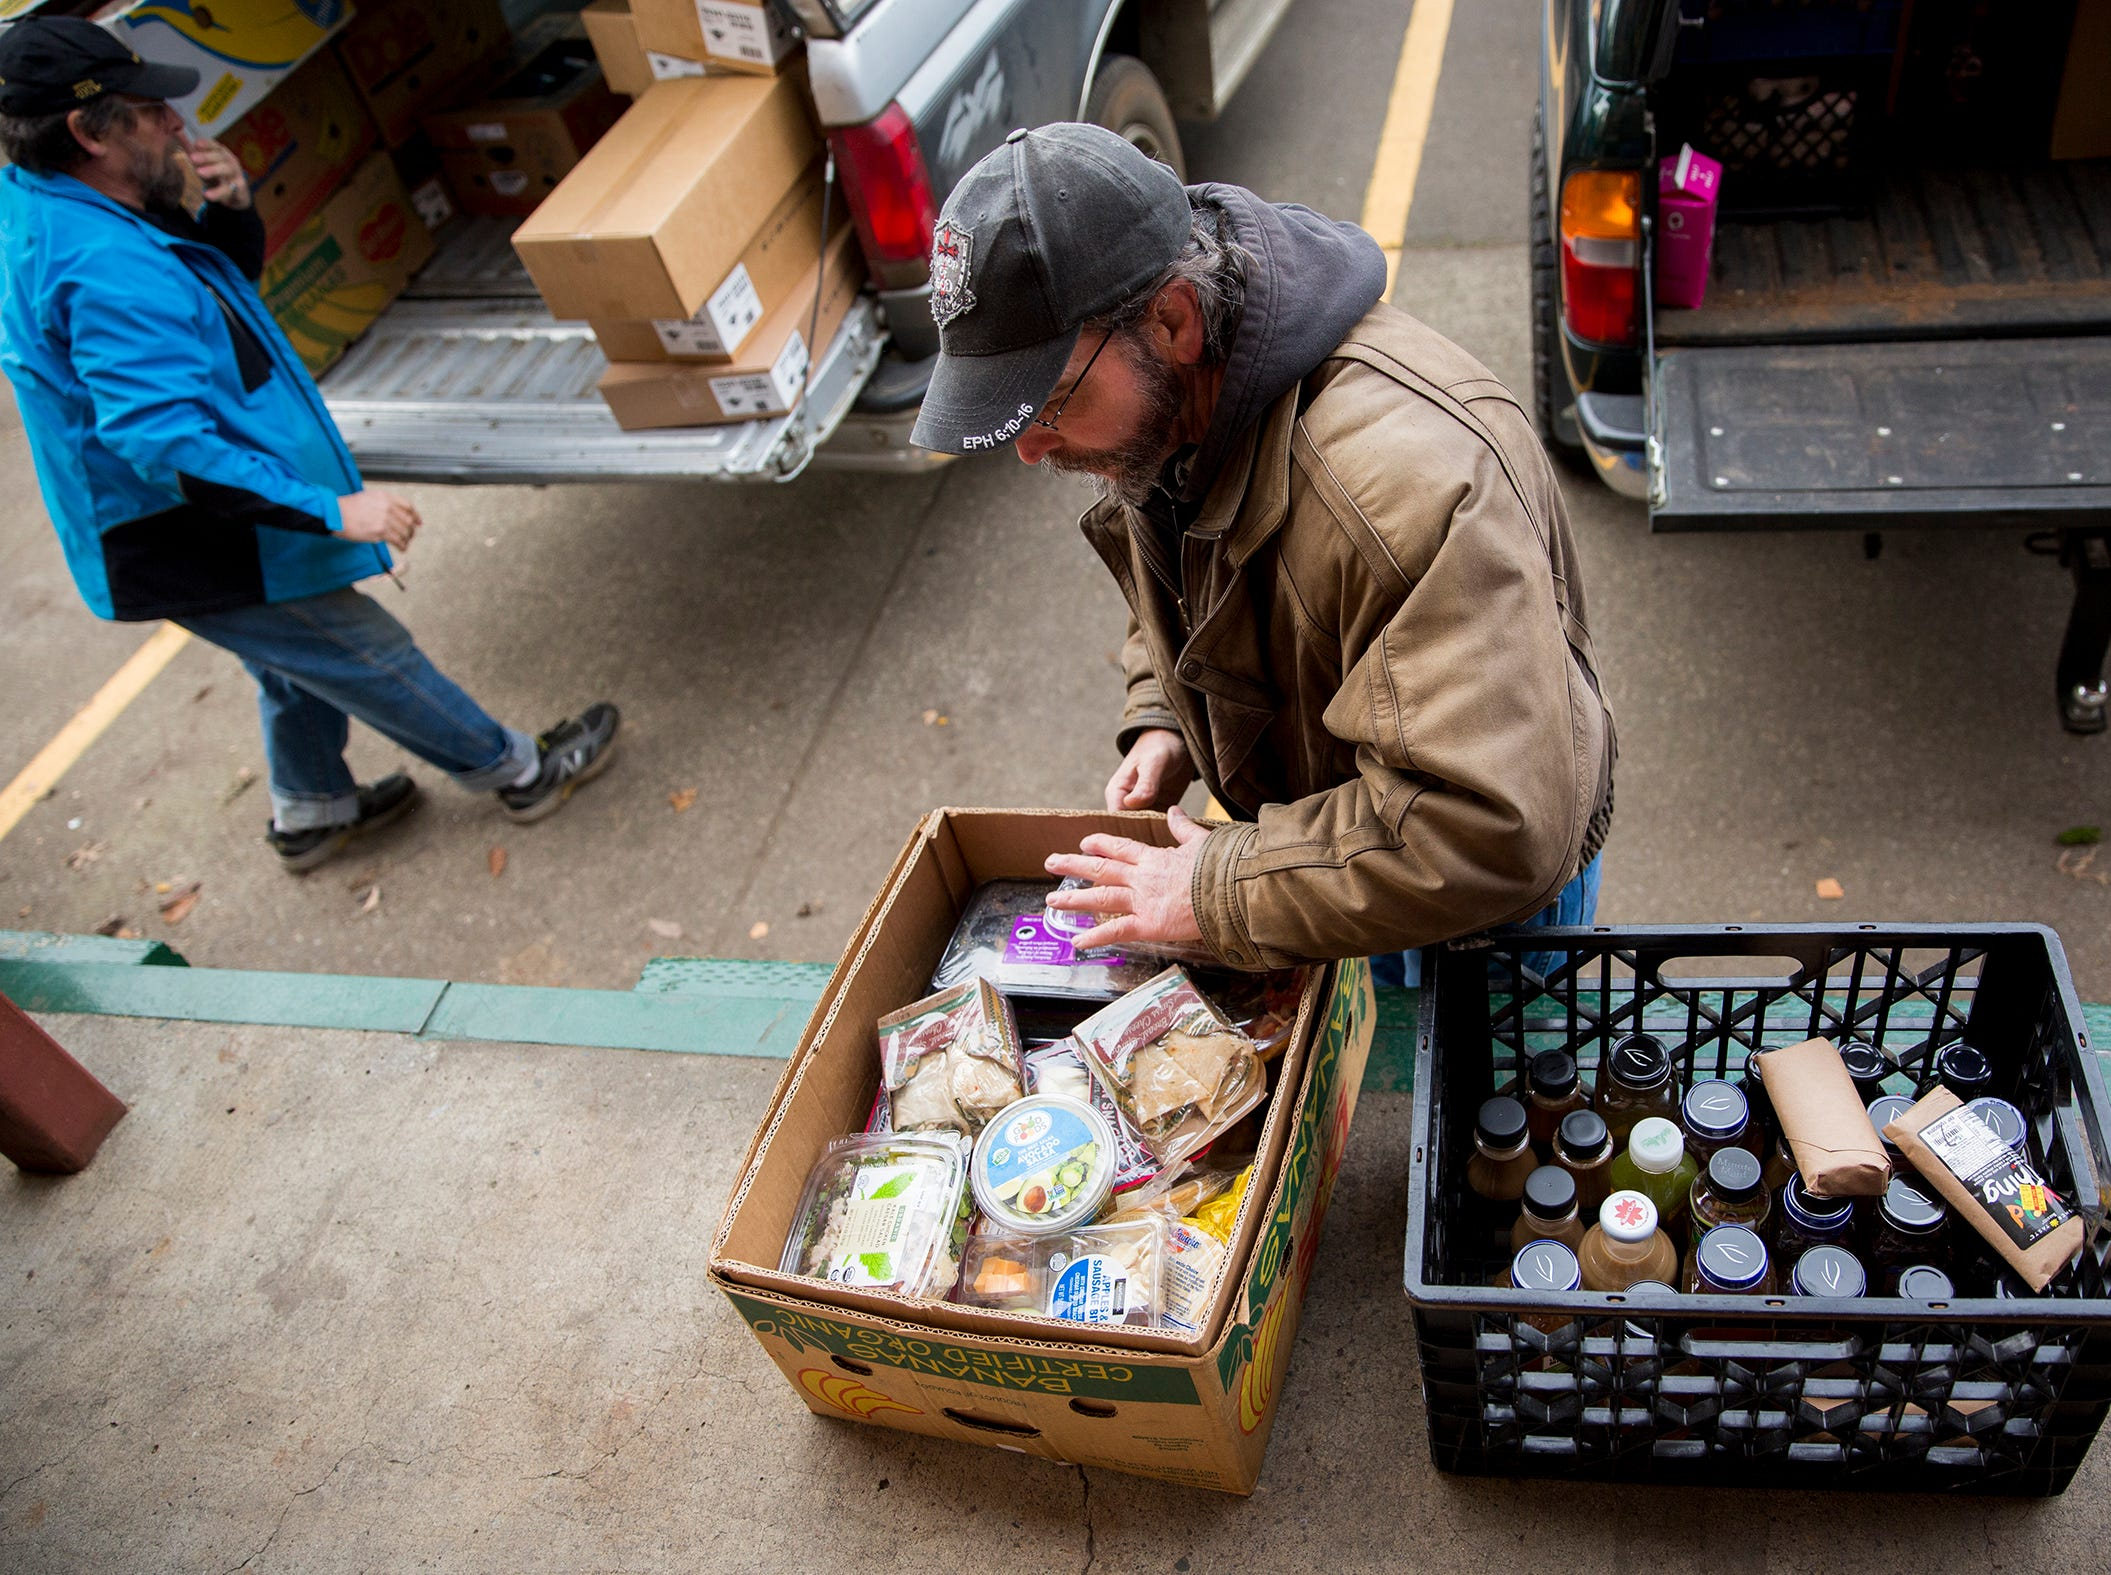 Art Scaglione sorts through food items at the Marion-Polk Food Share in Salem on Friday, Dec. 7, 2018. He collects the food for homeless people living in Wallace Marine Park.